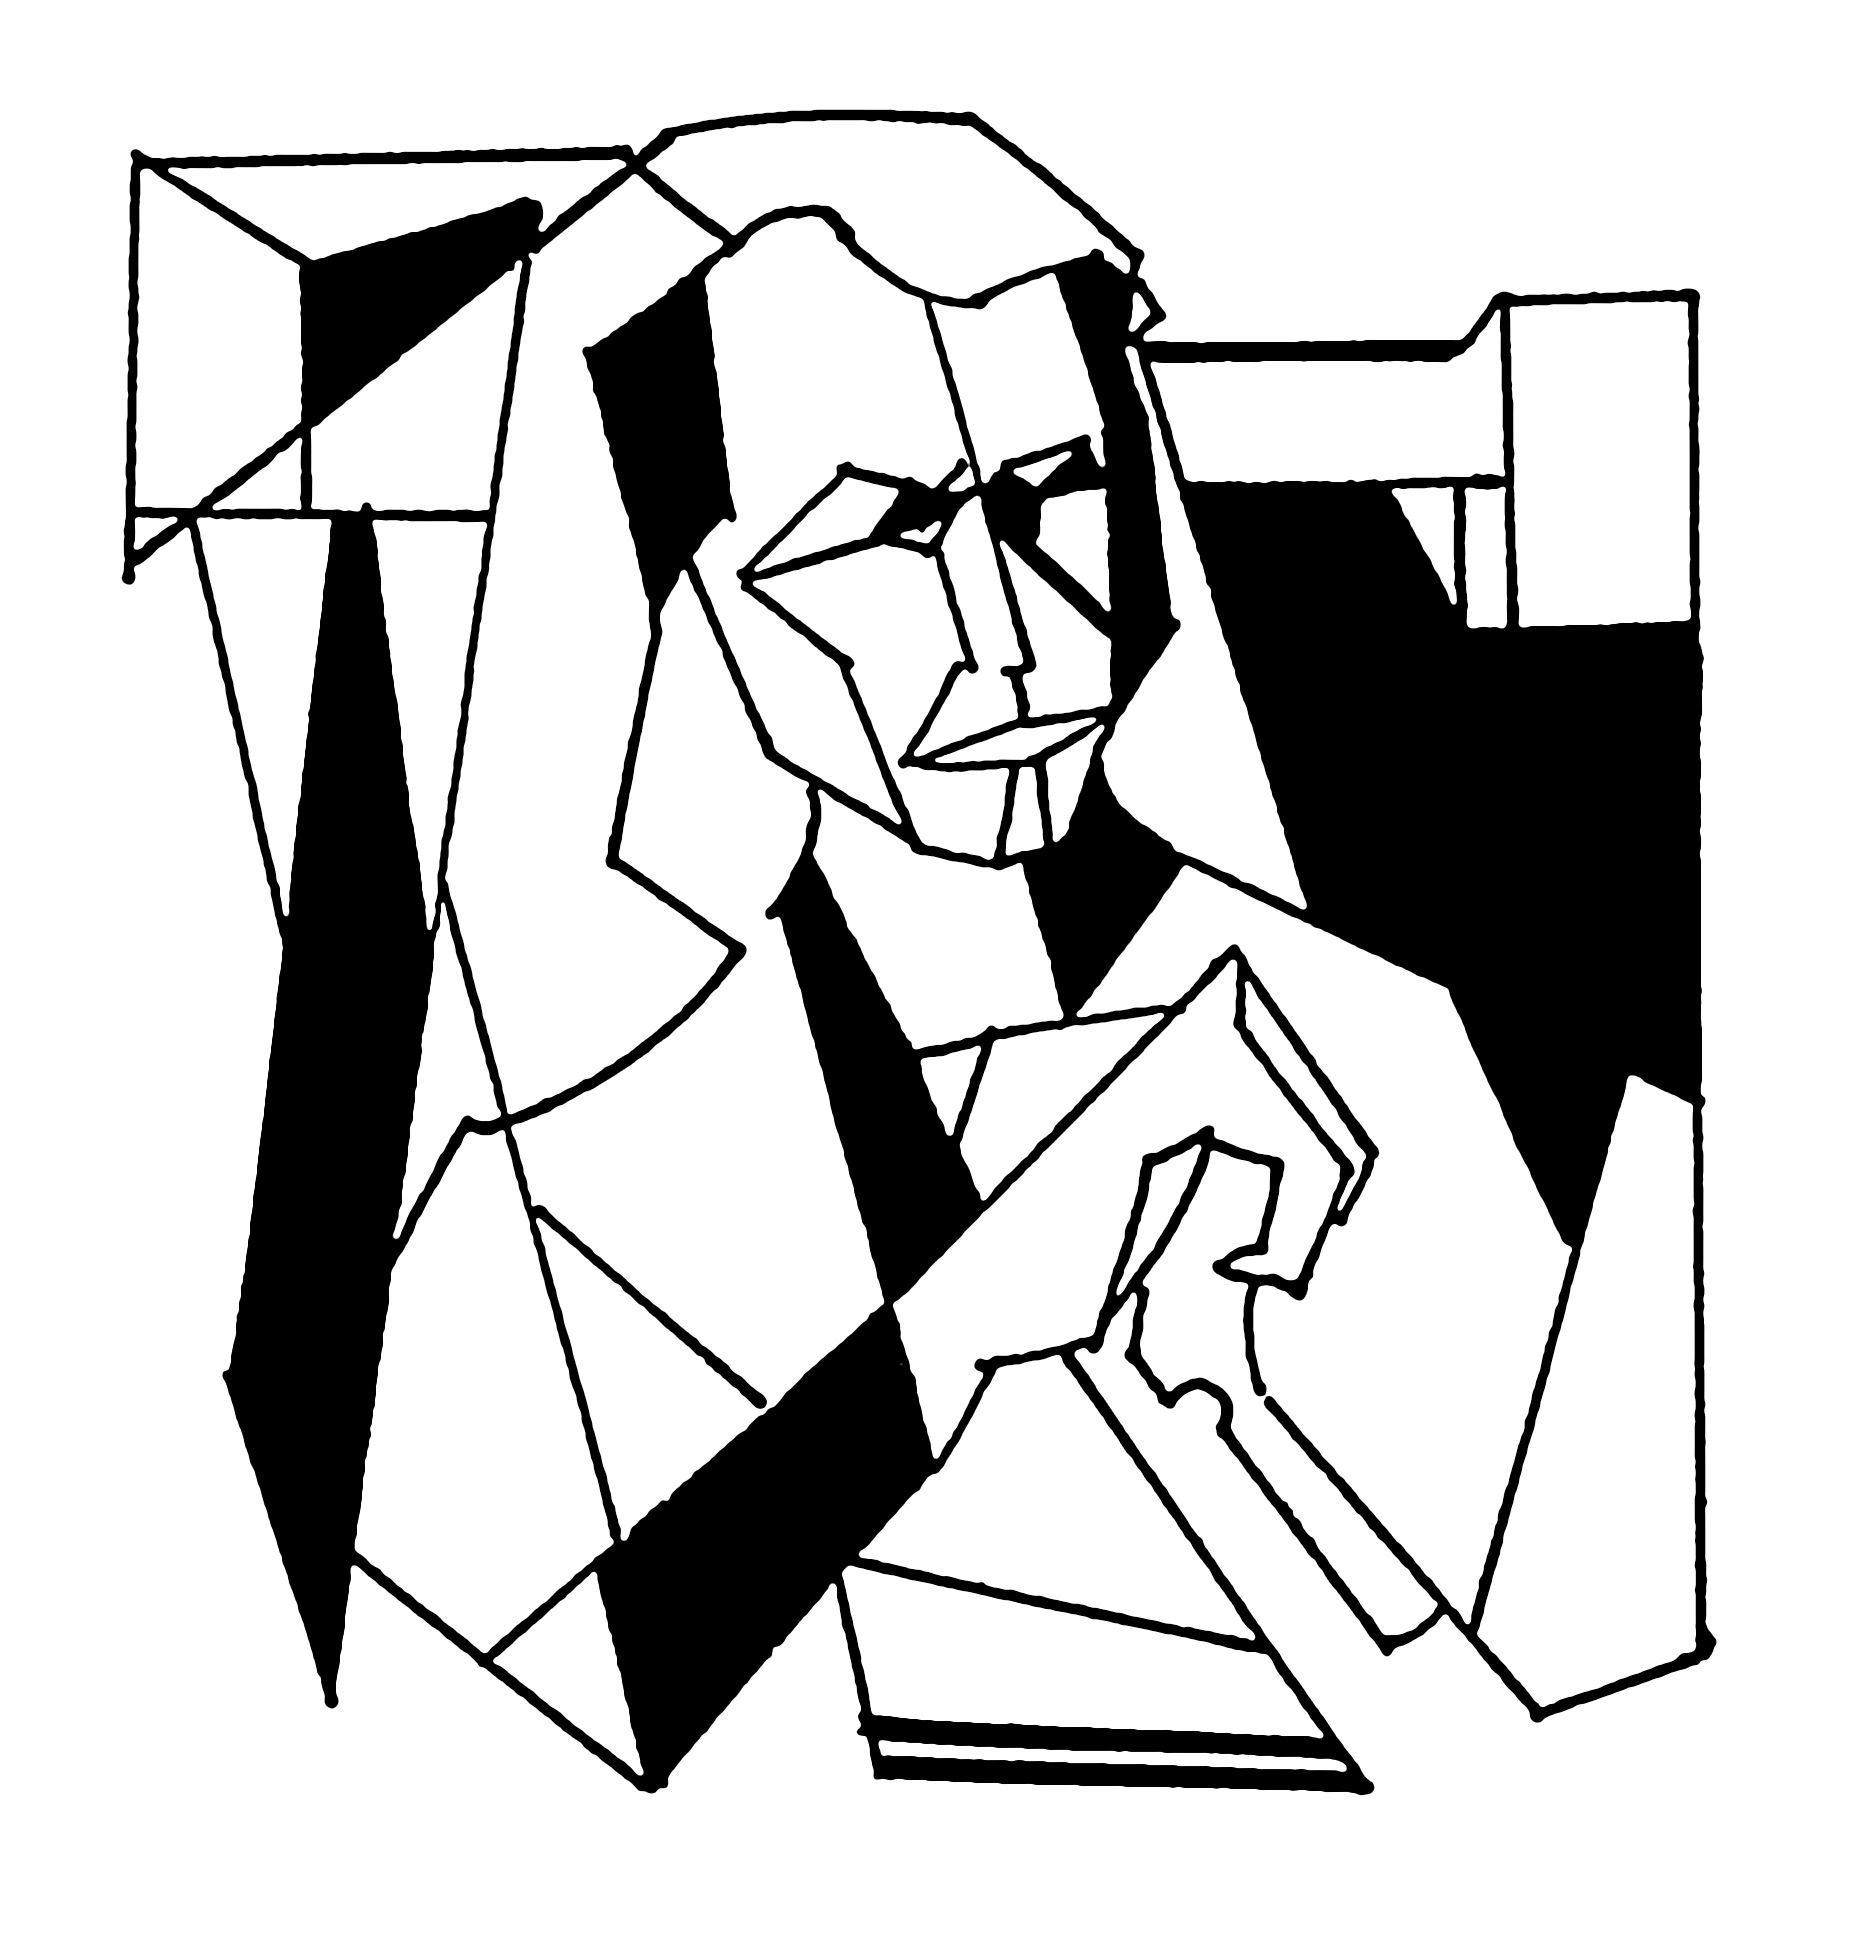 FileCubism PSFpng Wikimedia Commons